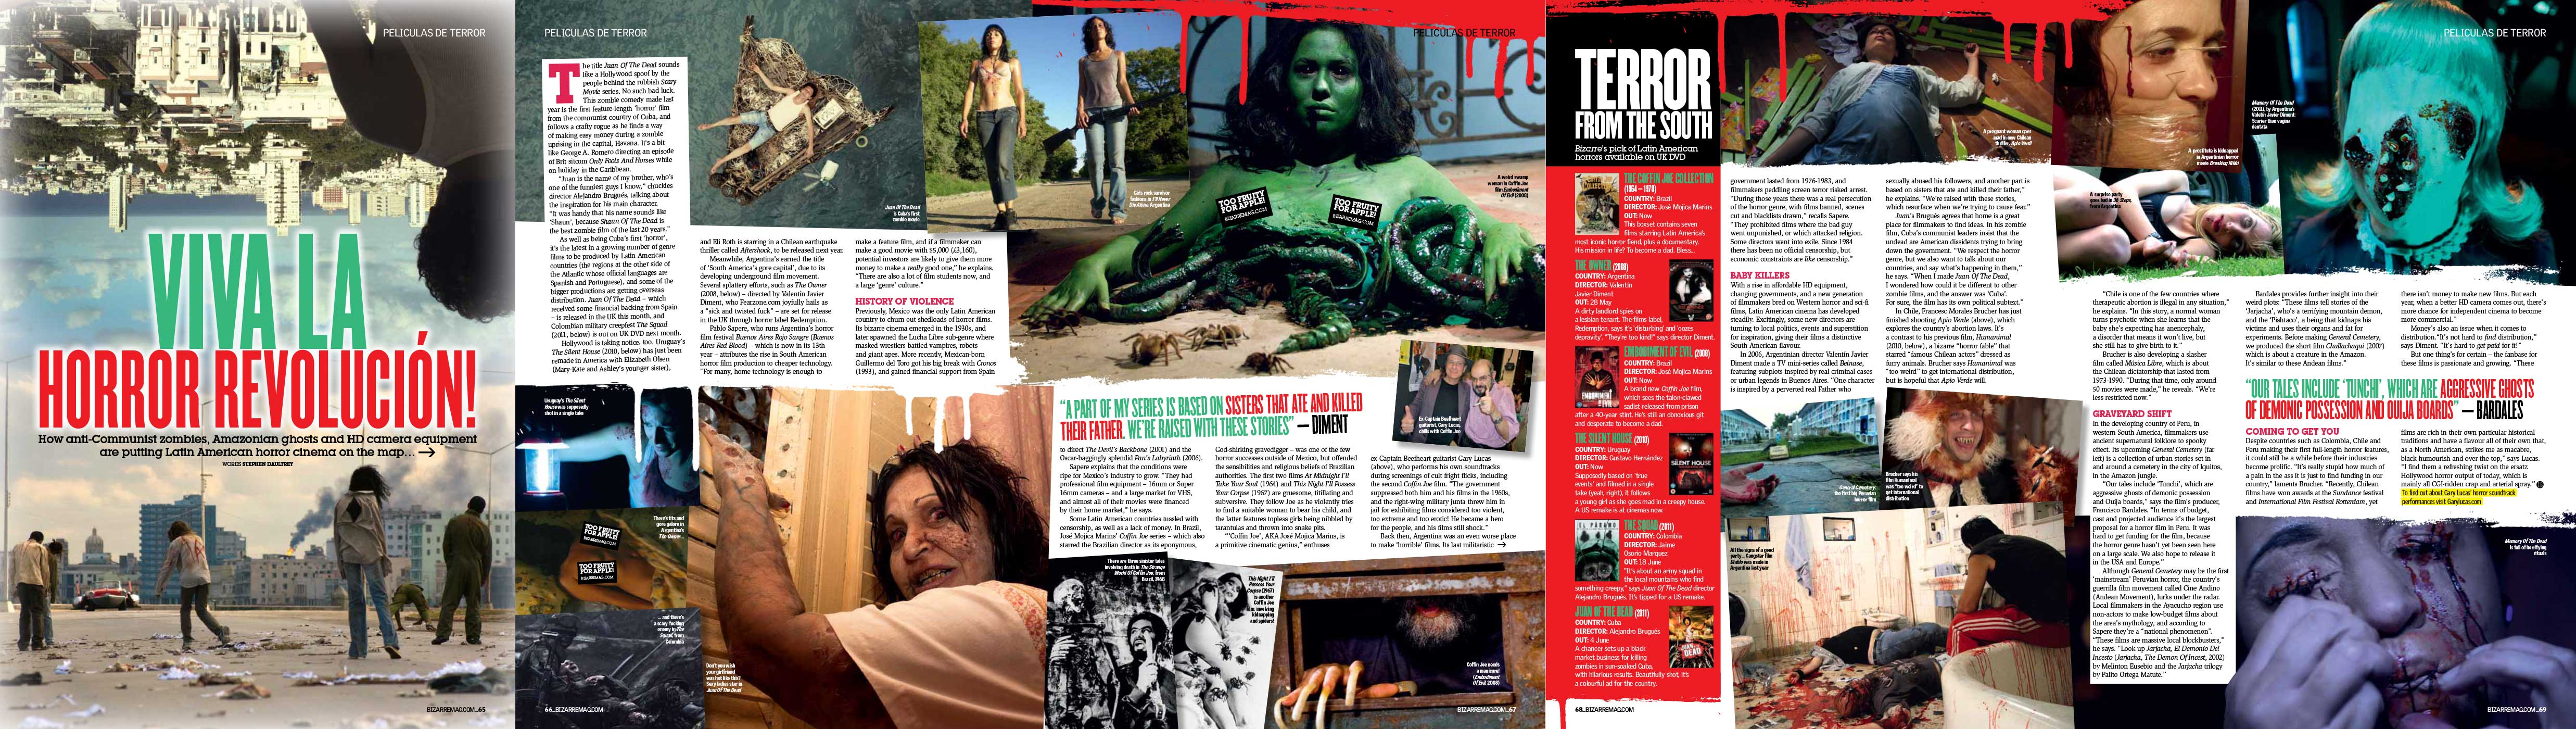 South American horror films — Bizarre Mag 2012